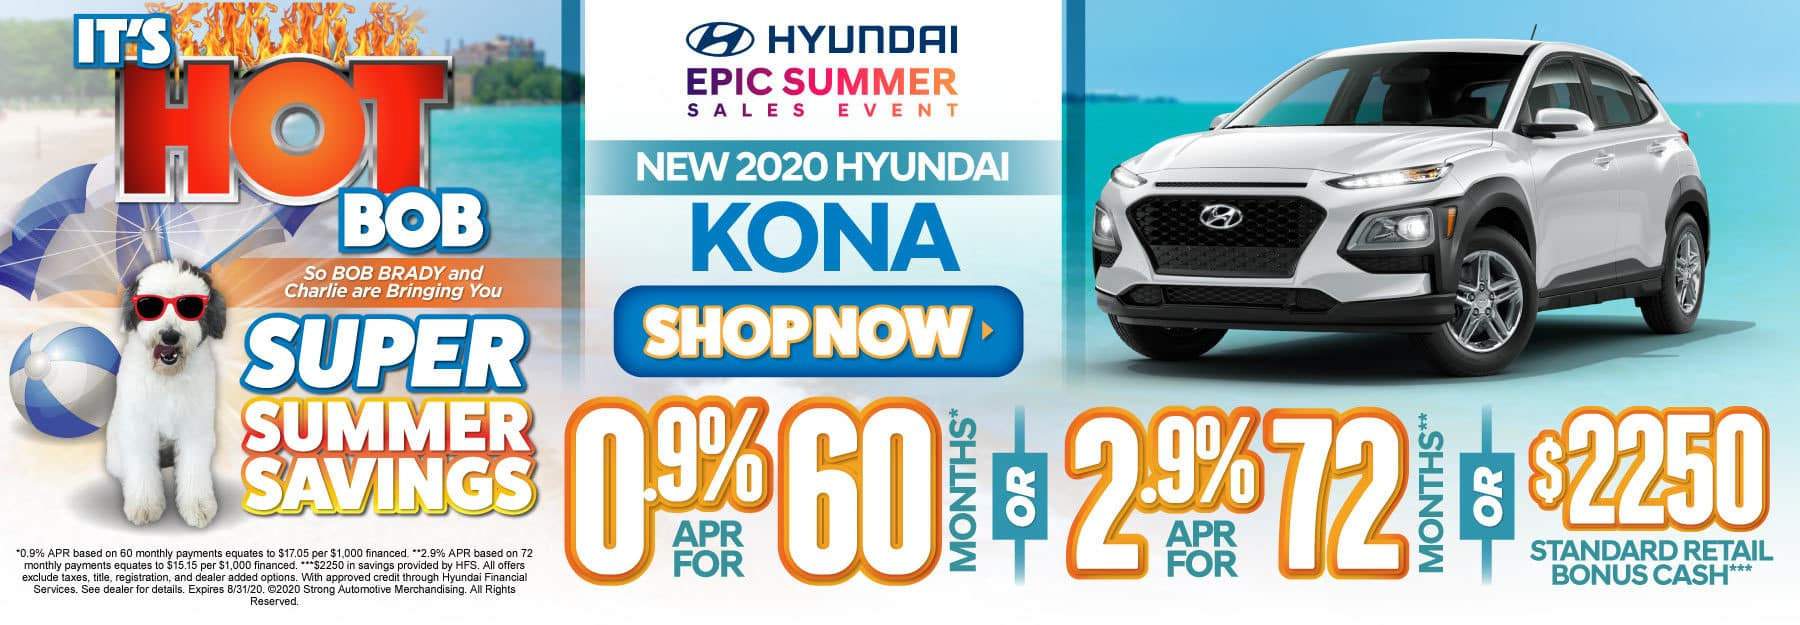 New 2020 Hyundai Kona - 0.9% APR for 60 months or 2.9% APR for 72 months or $2250 standard retail bonus cash - Click to View Inventory